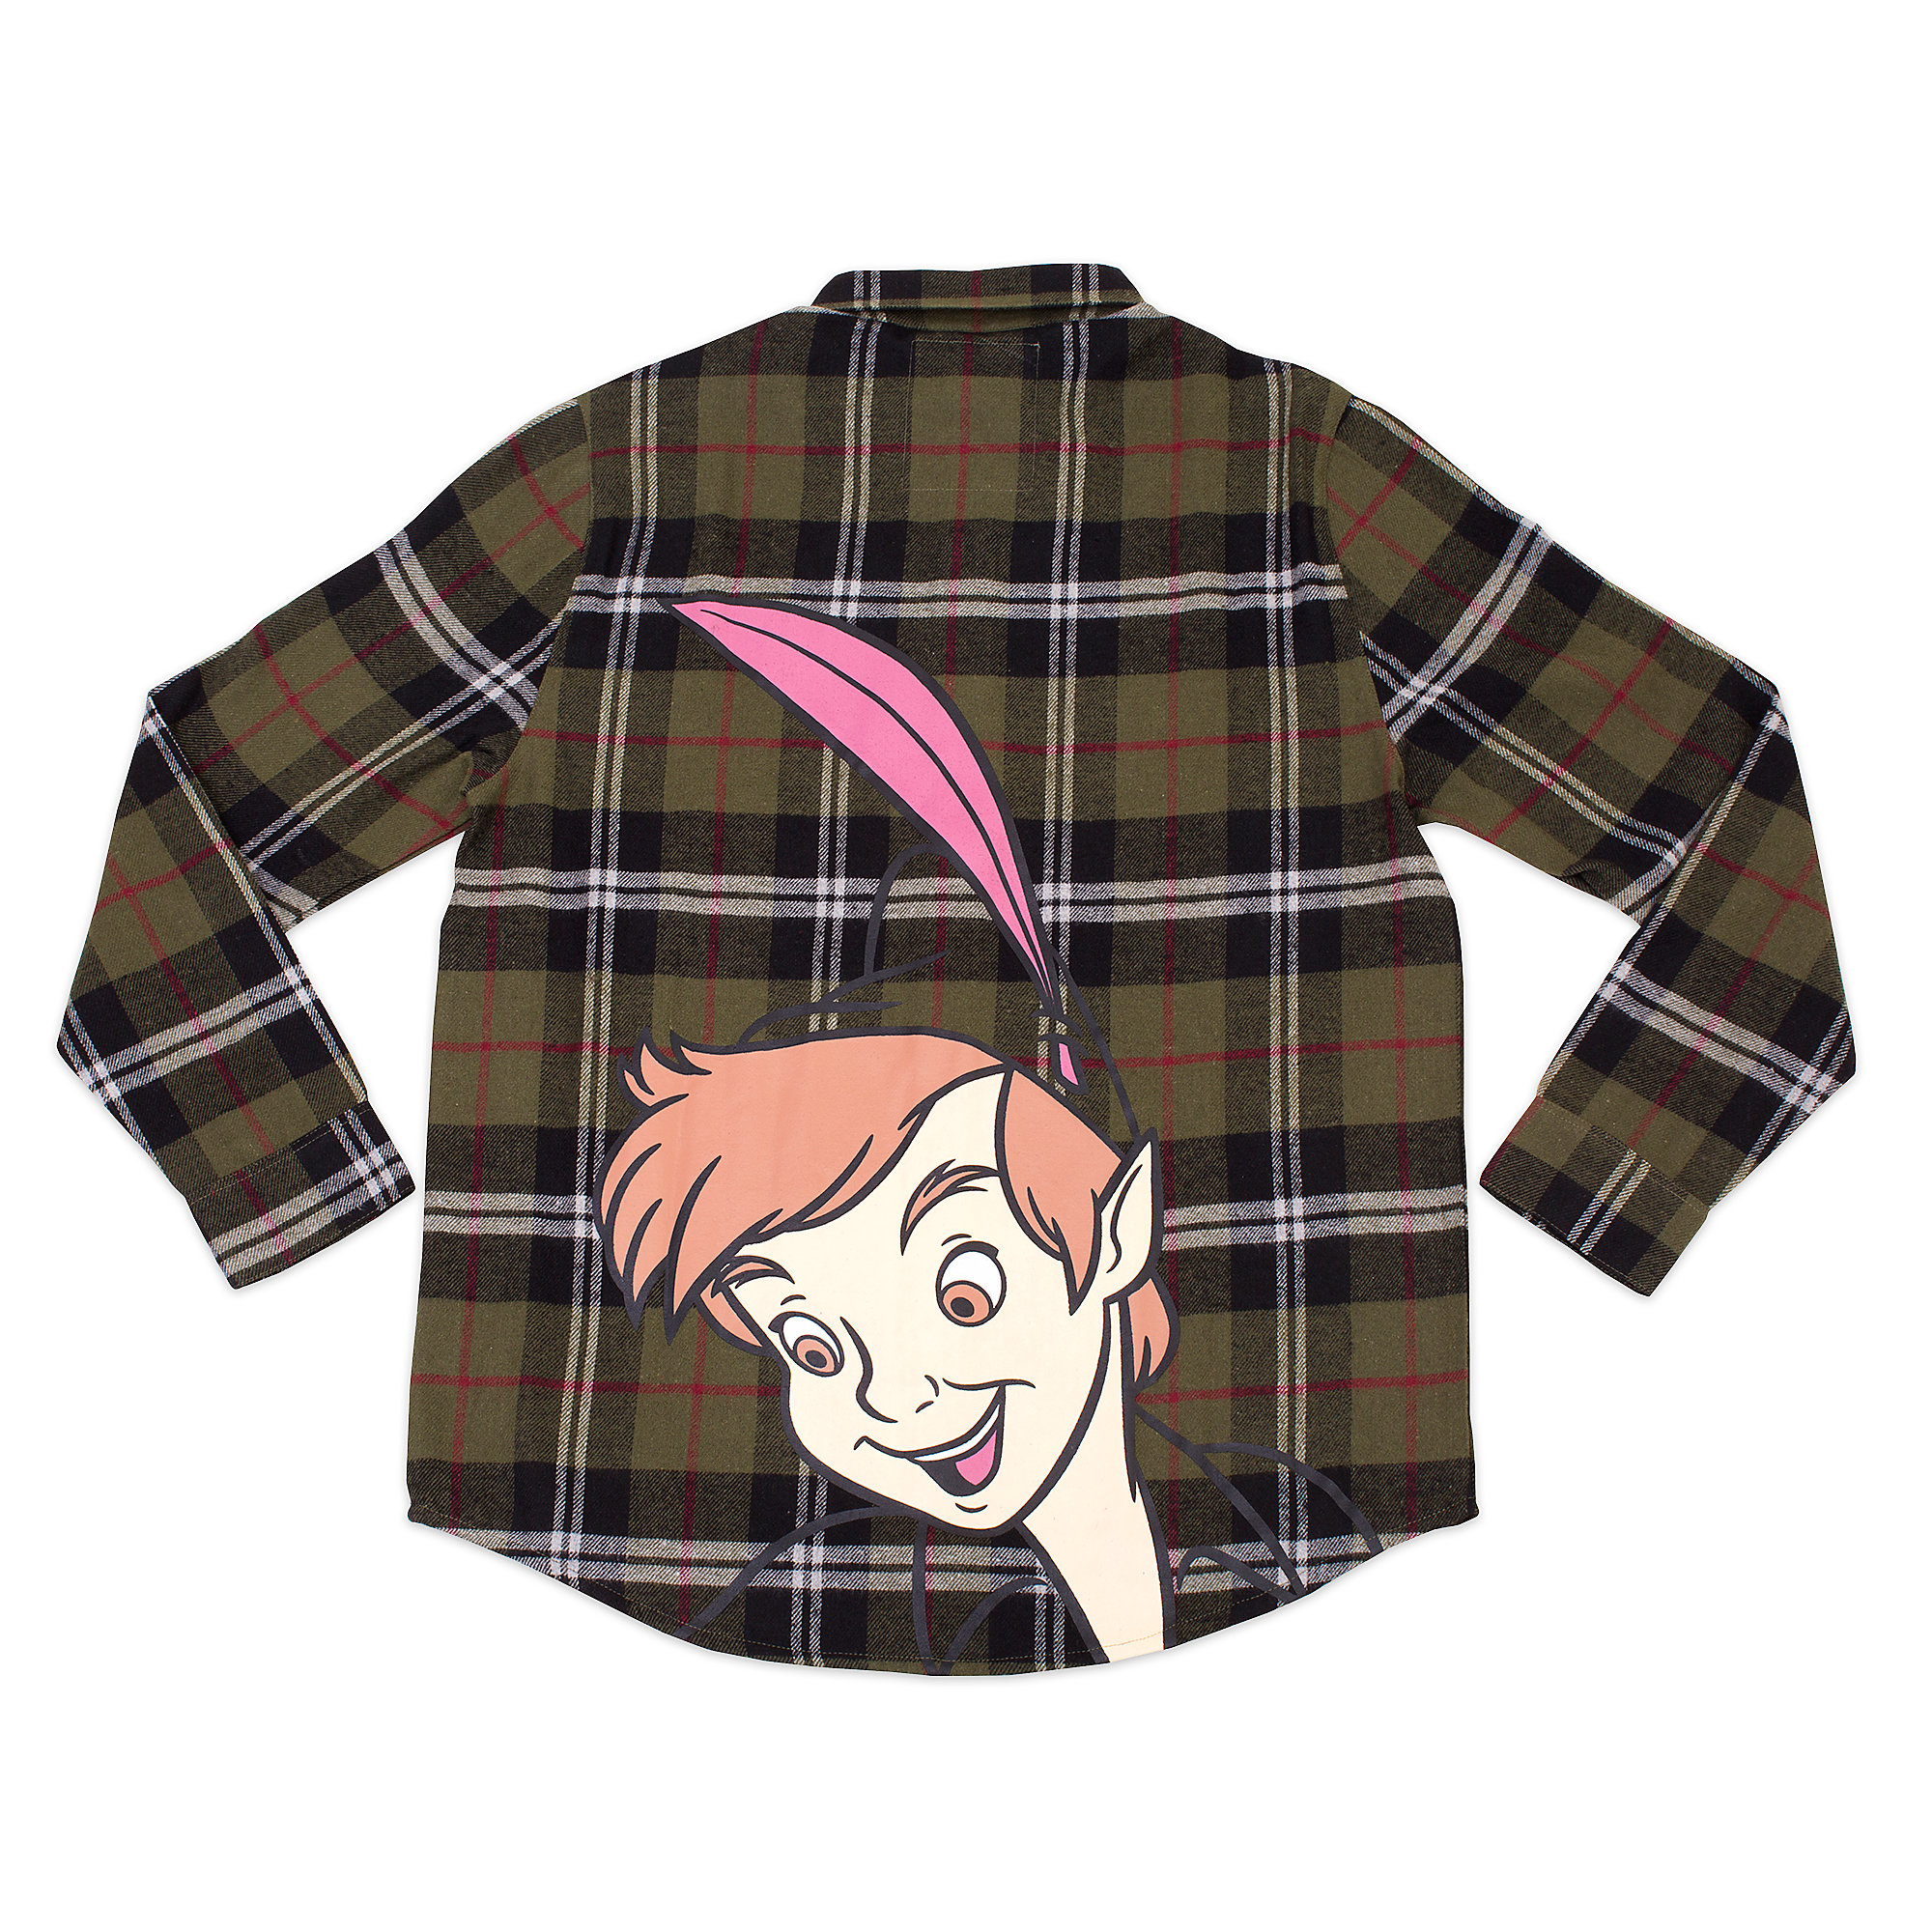 Peter Pan Flannel Shirt for Adults by Cakeworthy